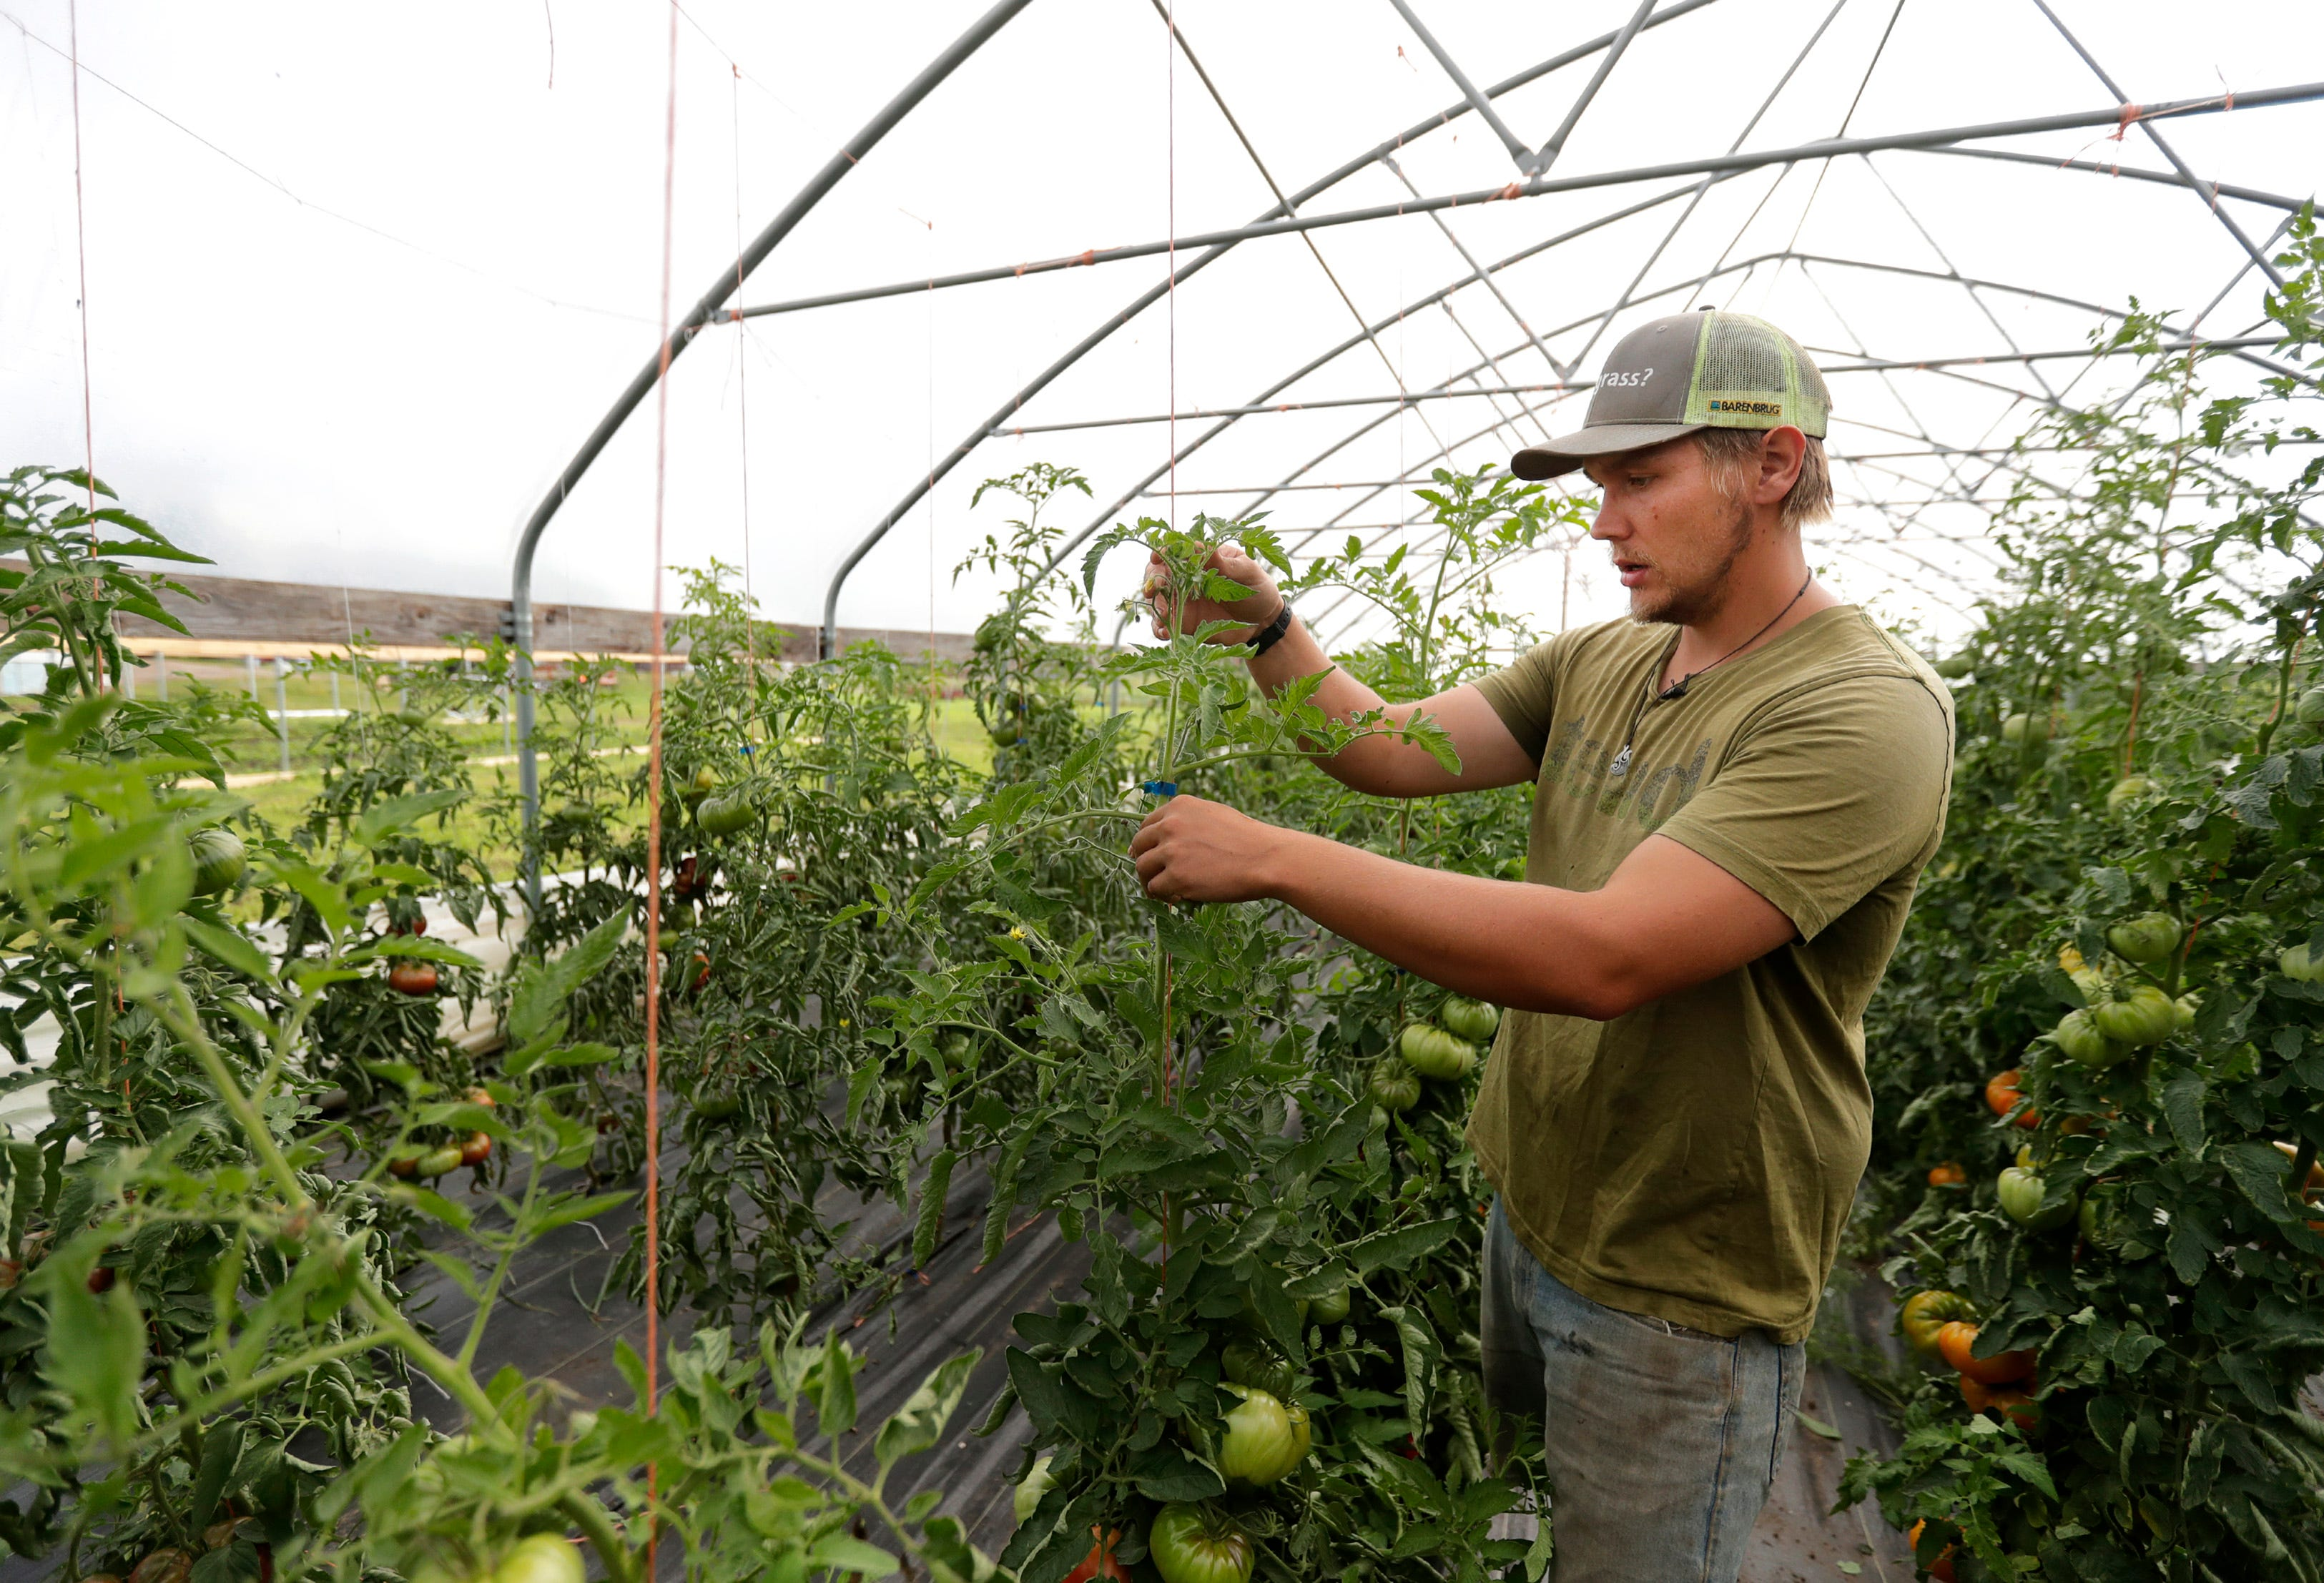 Andrew Adamski, son of Full Circle Community Farm's owners Rick Adamski and Valerie Dantoin, looks through tomatoes on their farm Tuesday, Aug. 27, 2019 in Seymour, Wis. Andrew with be inheriting the farm for a fifth generation with his partner Heather Toman.